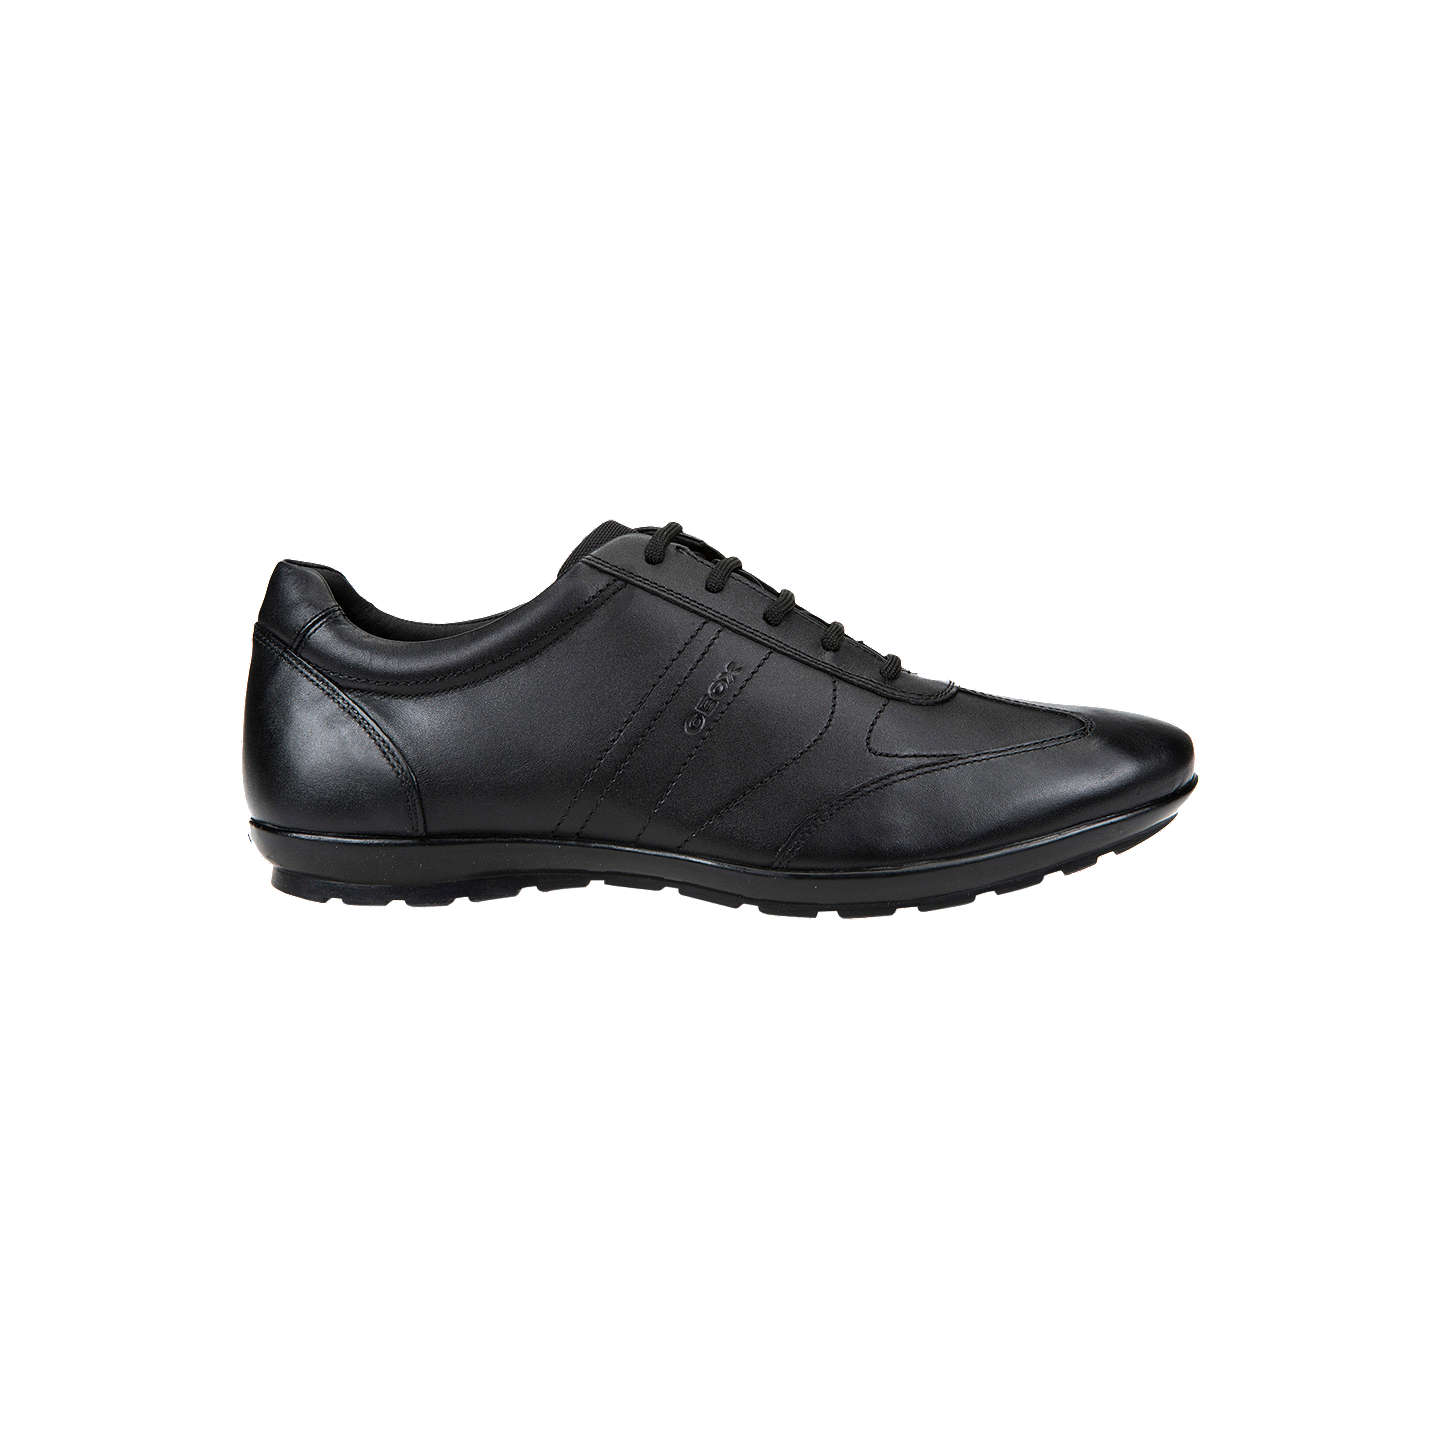 BuyGeox Symbol City Leather Trainers, Black, 7 Online at johnlewis.com ...